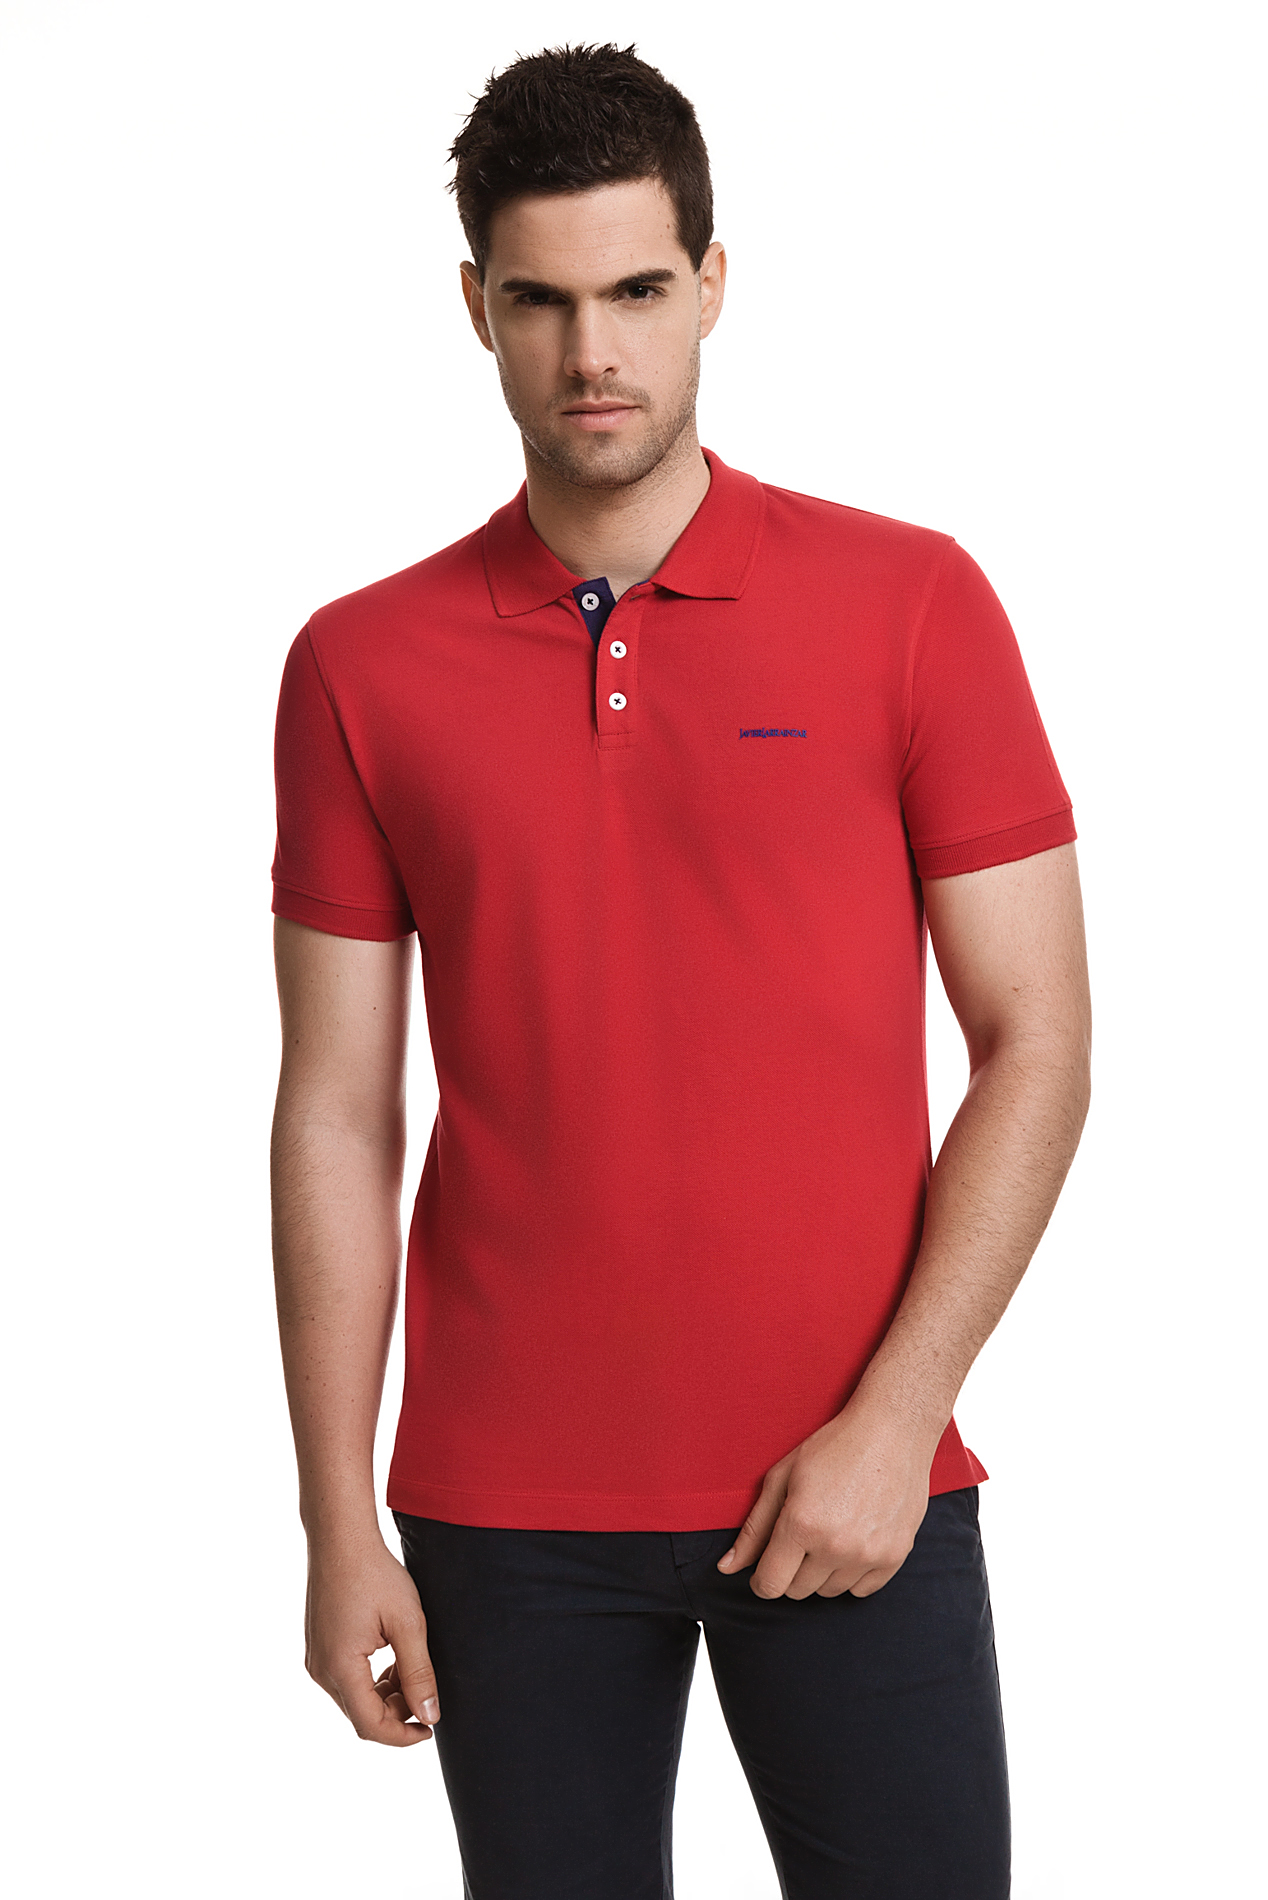 Javier Larrainzar Casual Polo Shirt For Men Short Sleeve Piqué Red Color T-Shirt  Male Clothing Man Brand Cotton JL0000290